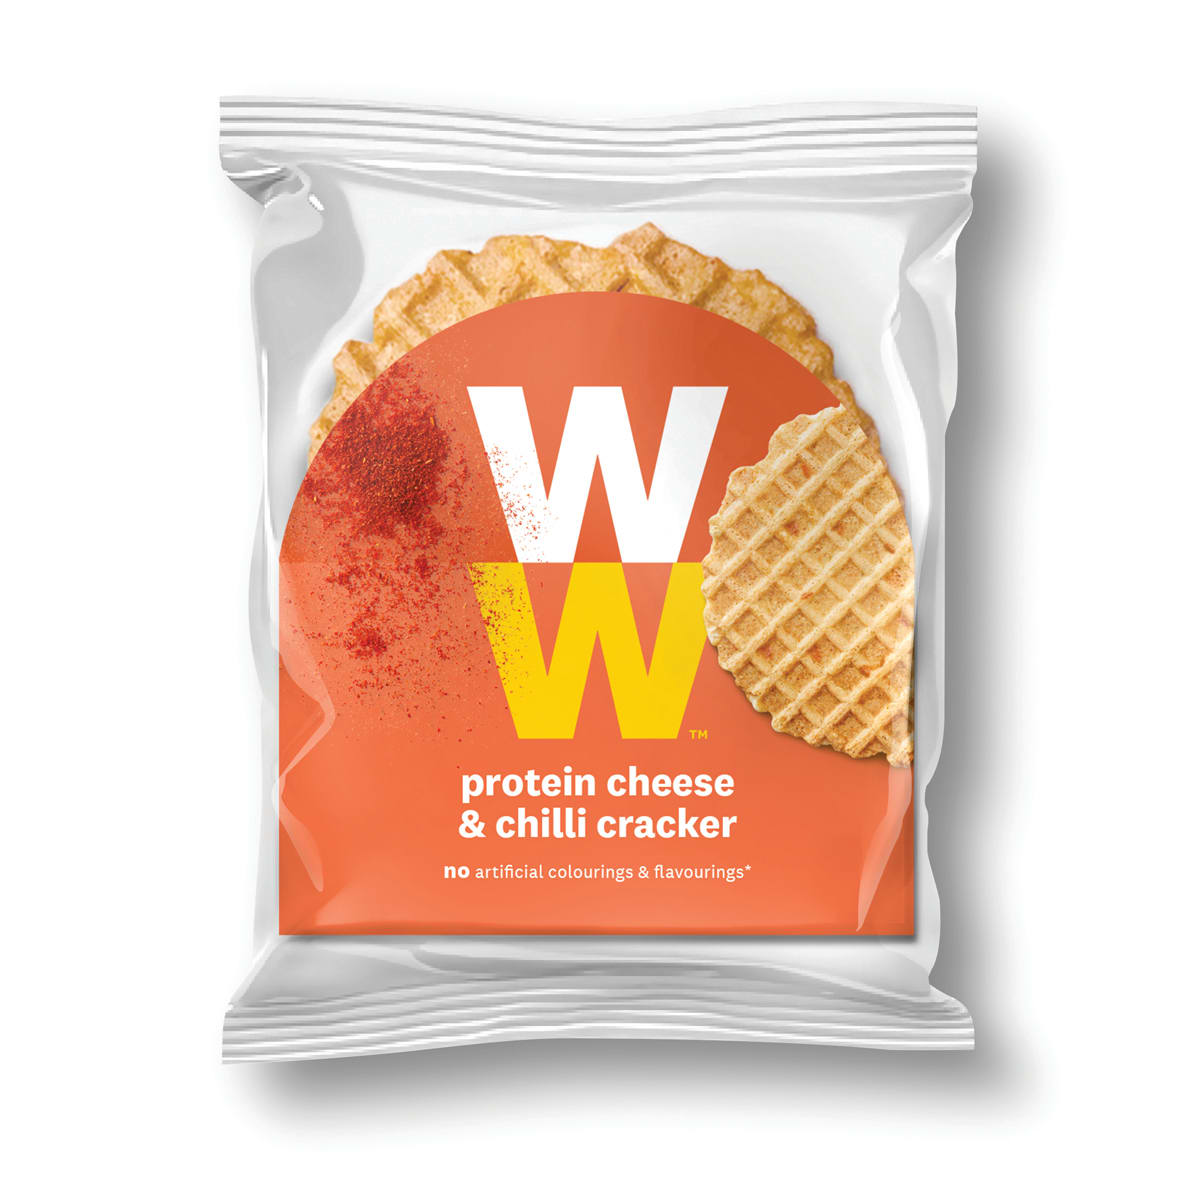 Crunchy with a deliciously cheesy and chilli flavour WW Protein Cheese Crackers, delicious on its own or with a topping, 2 SmartPoints values per portion, suitable for vegetarians